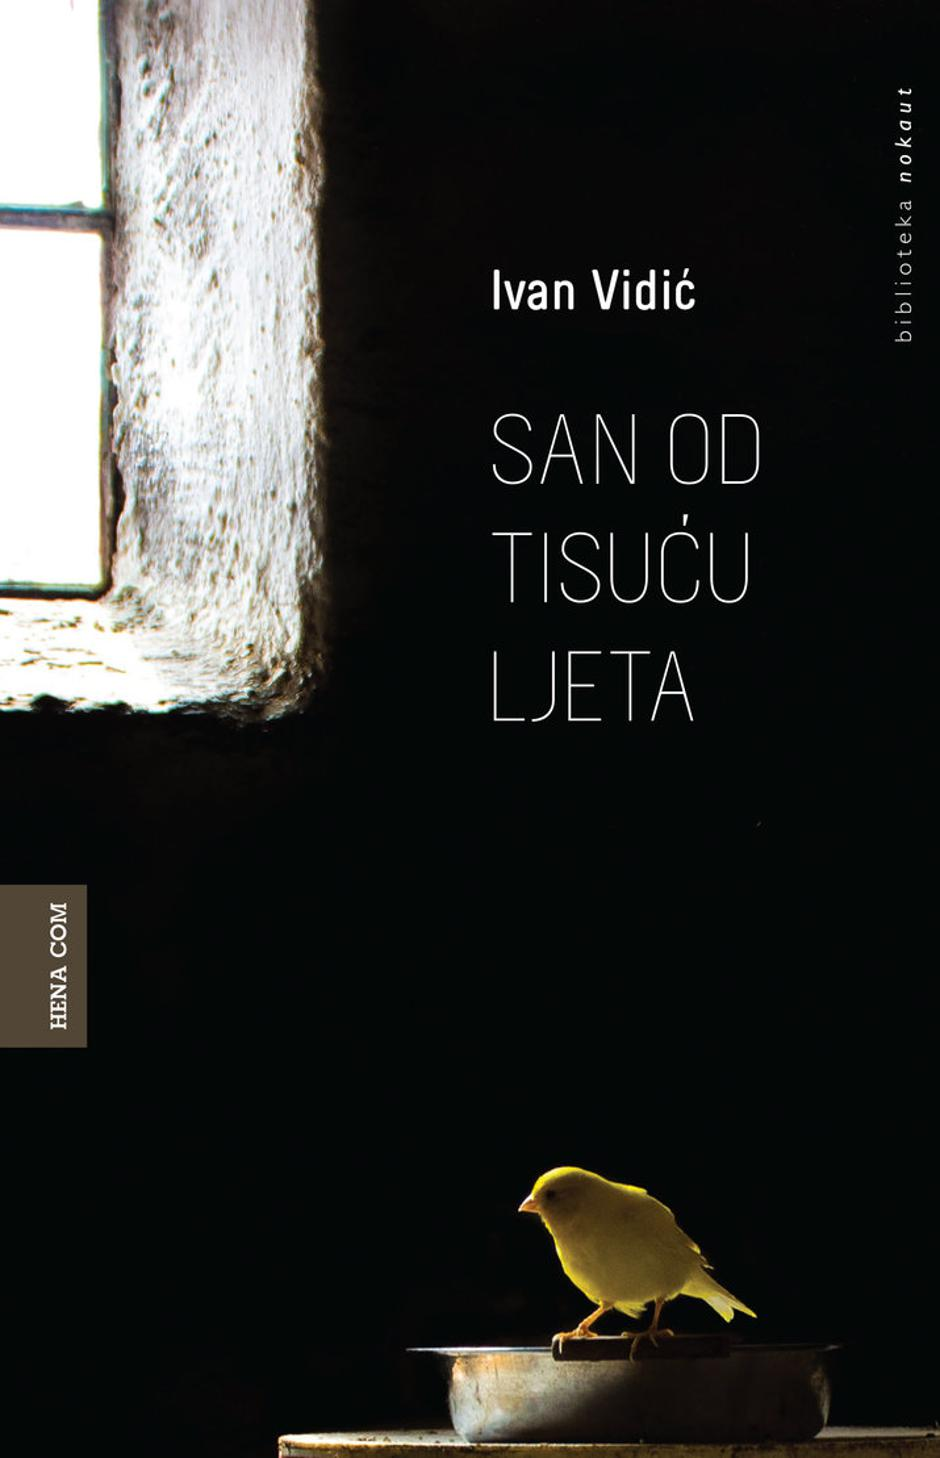 Ivan Vidić | Author: Hena